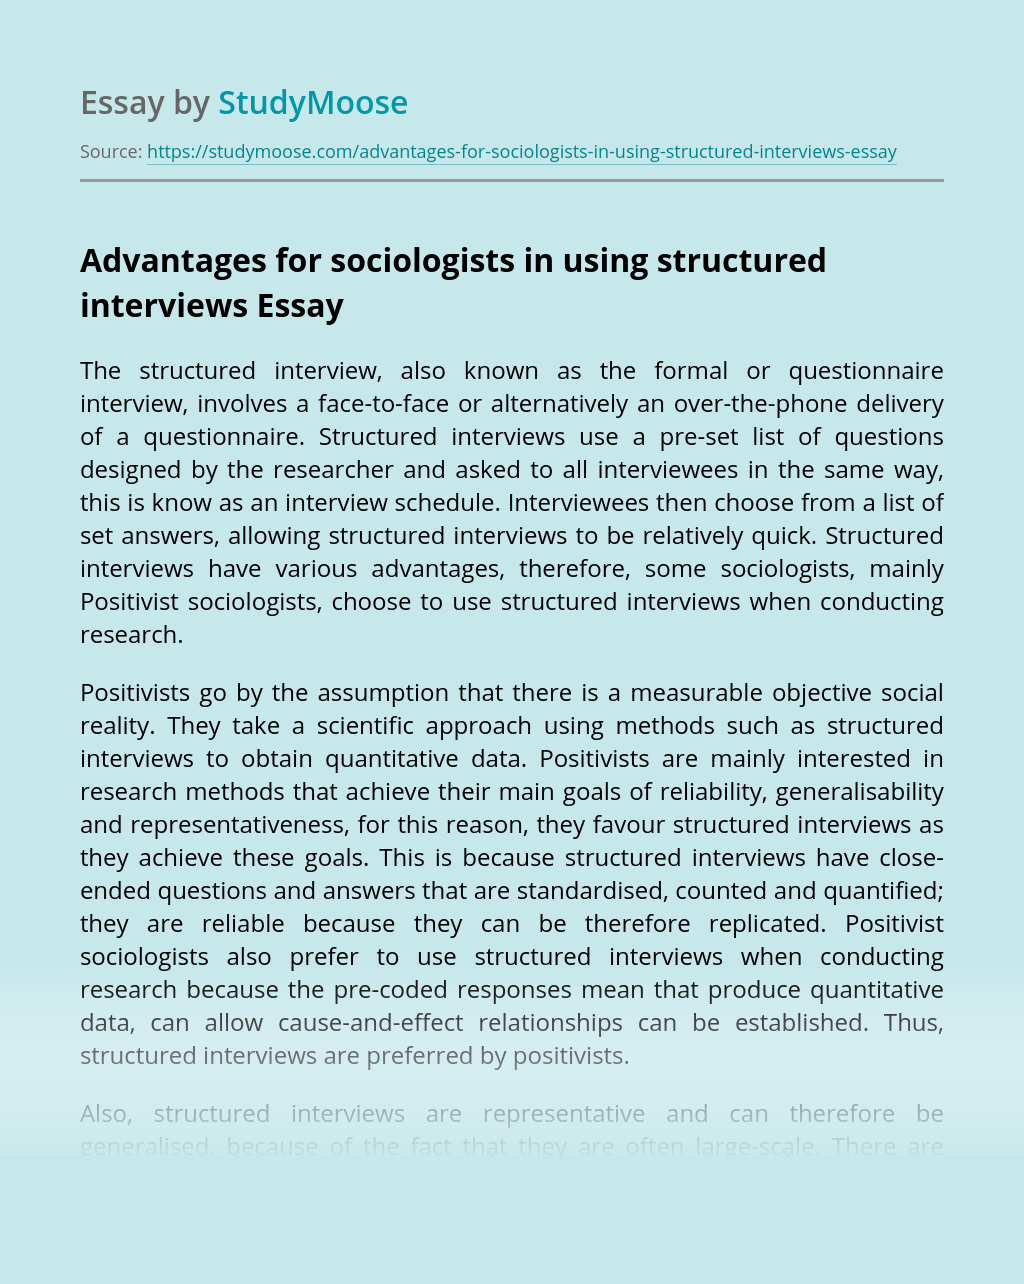 Advantages for sociologists in using structured interviews